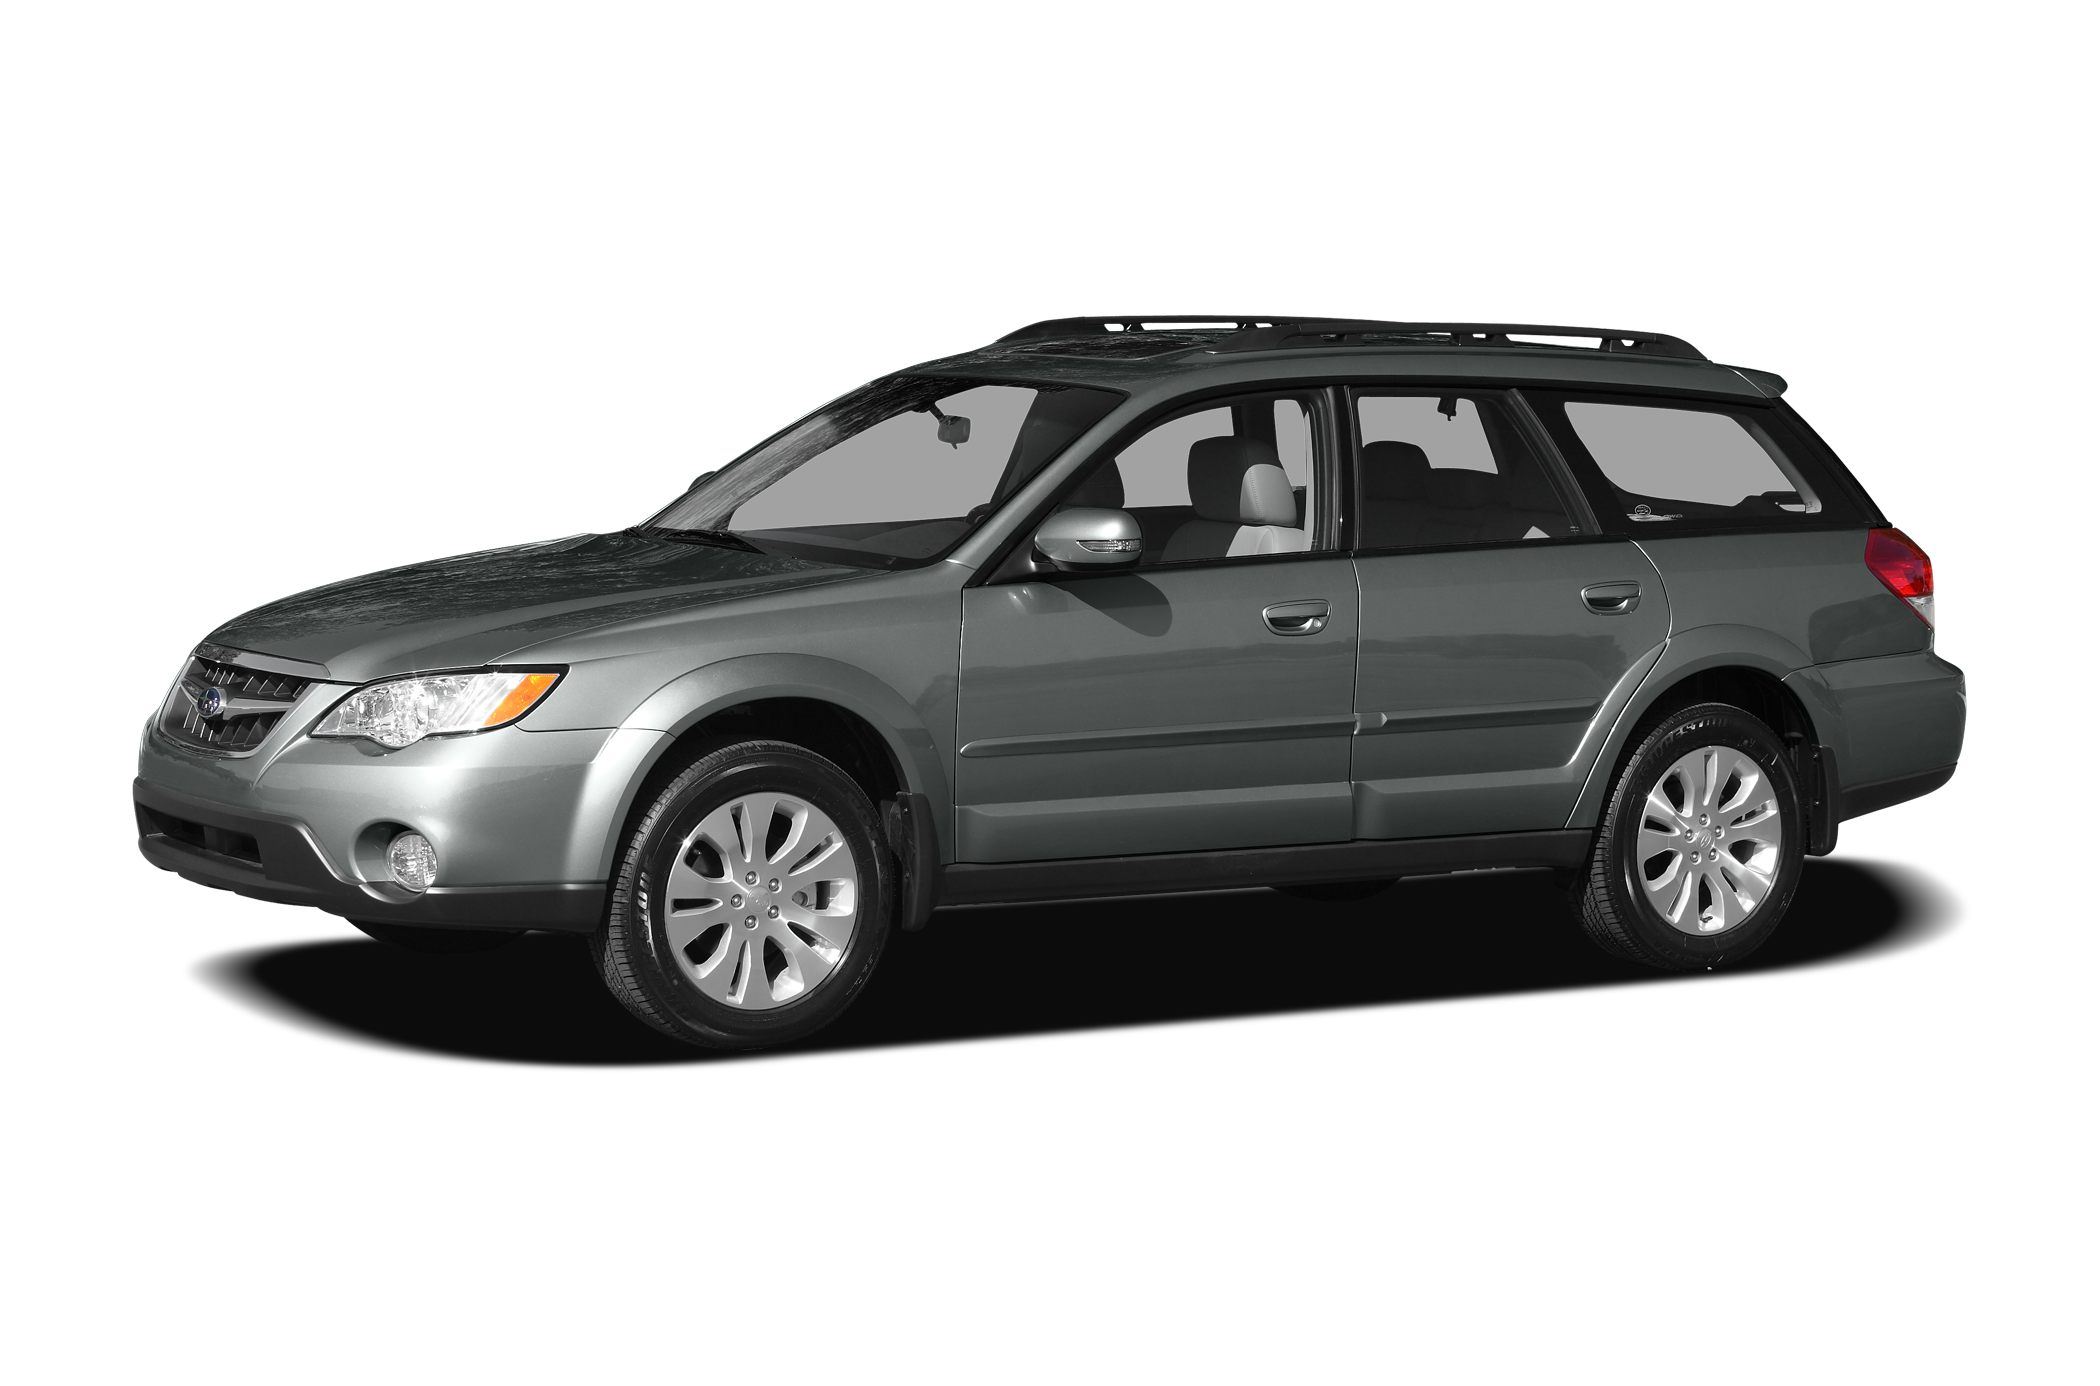 2009 Subaru Outback 25i Special Edition Miles 95678Color Tan Stock 20394 VIN 4S4BP61C497327